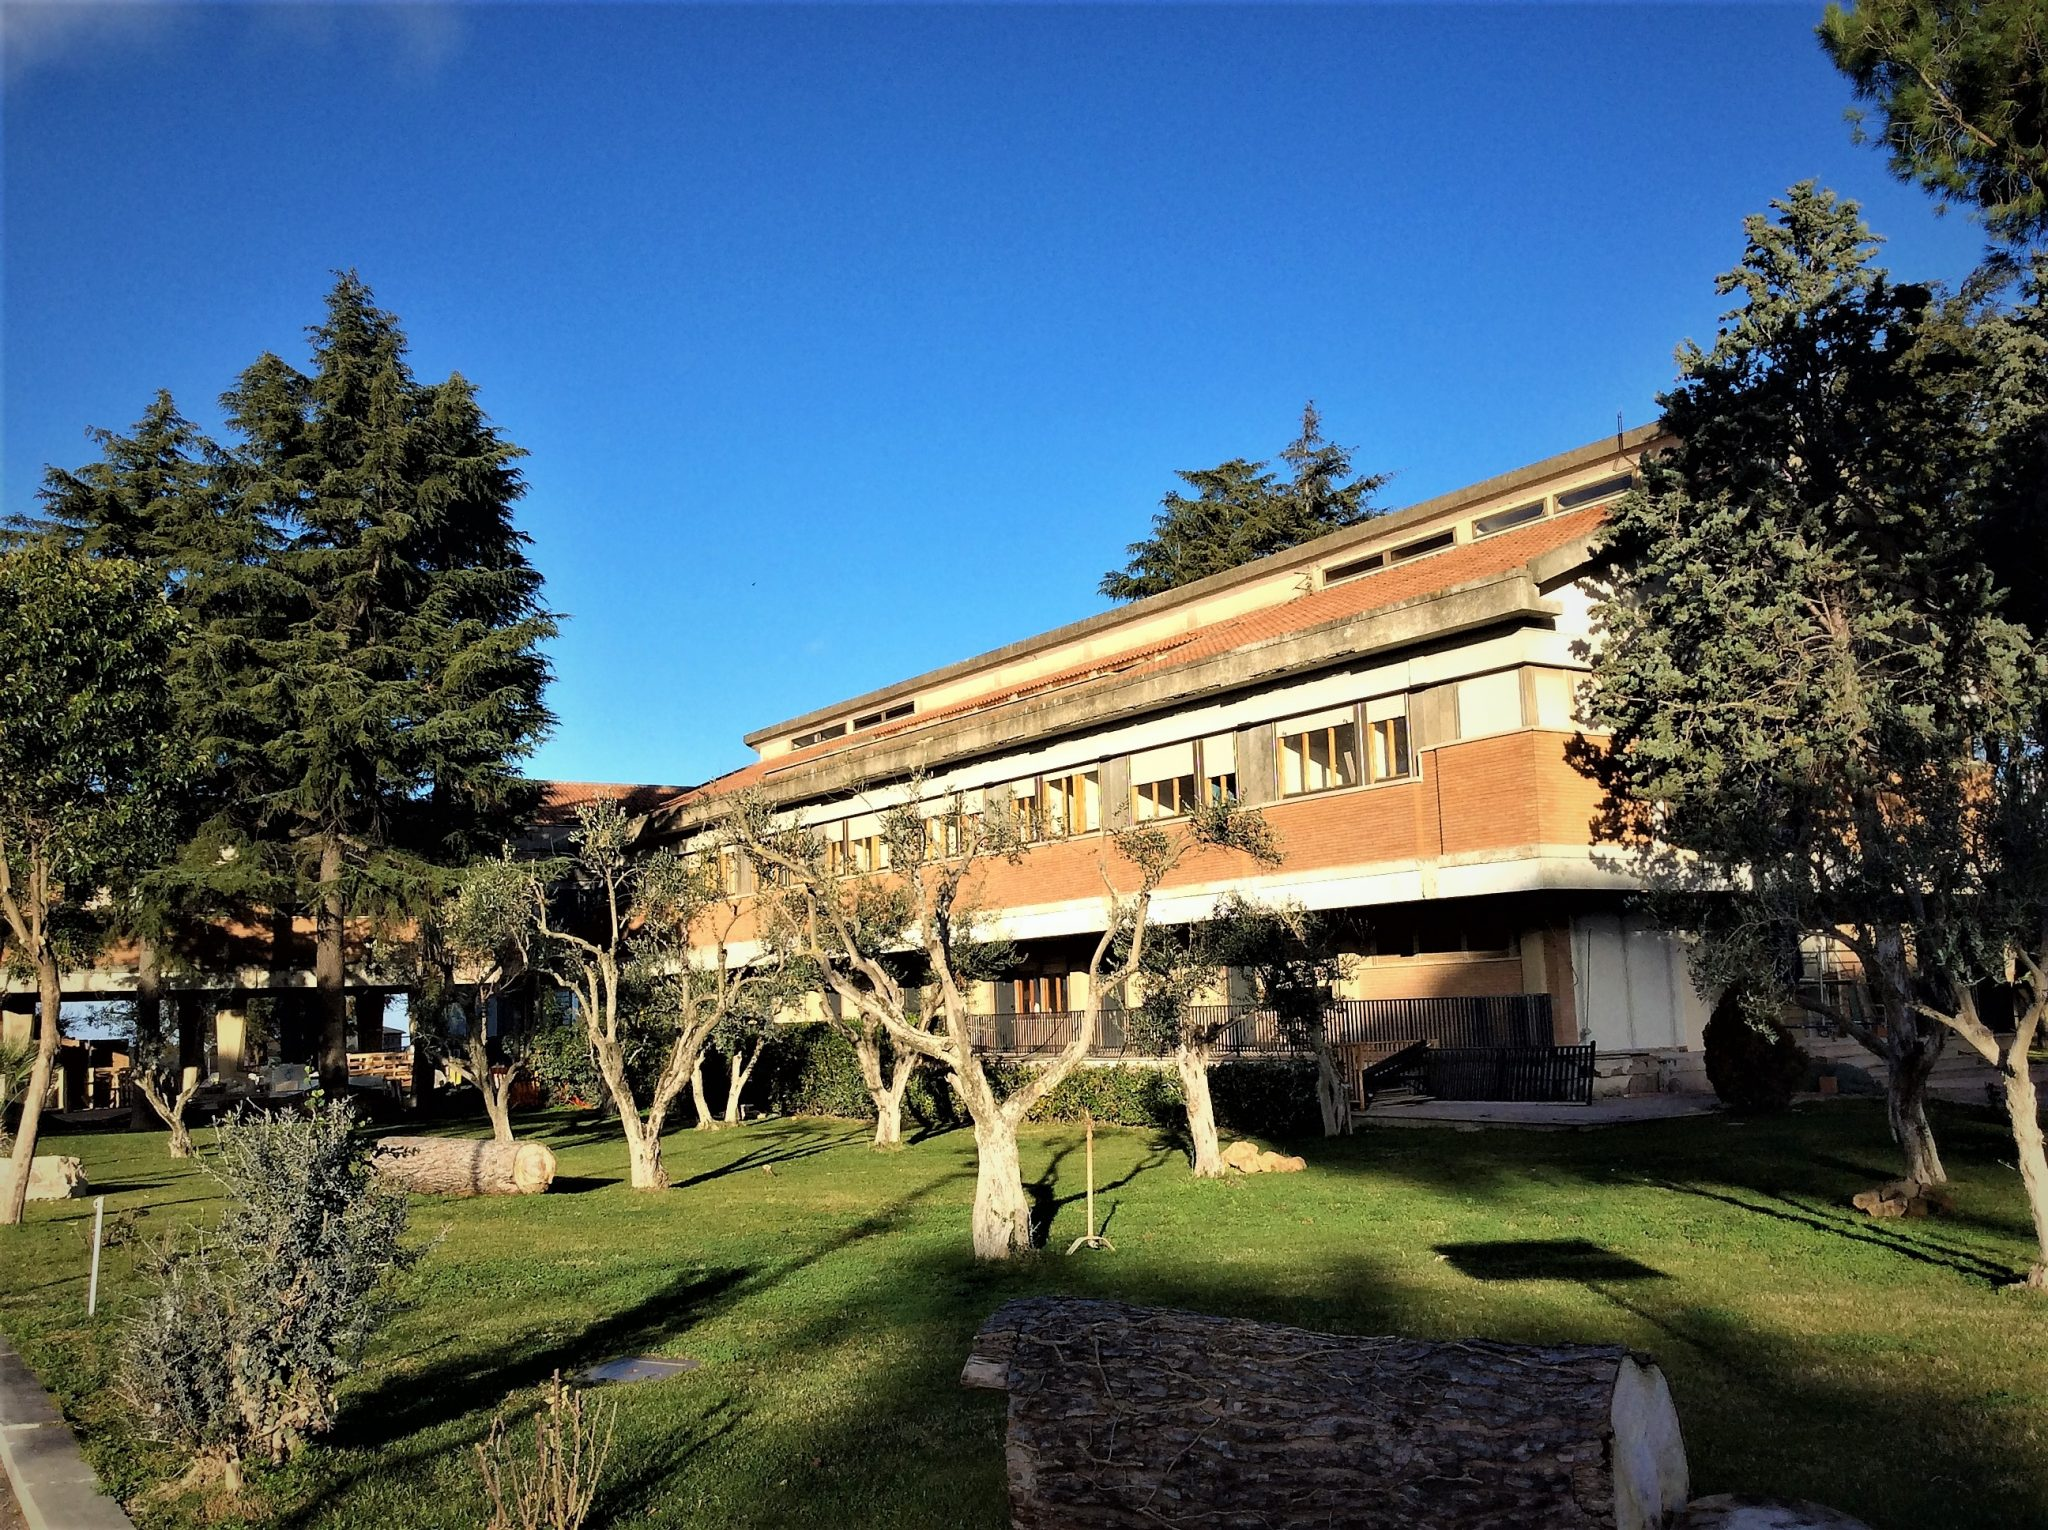 Institute of St. Anselm Relocated to Rome Opens its Doors